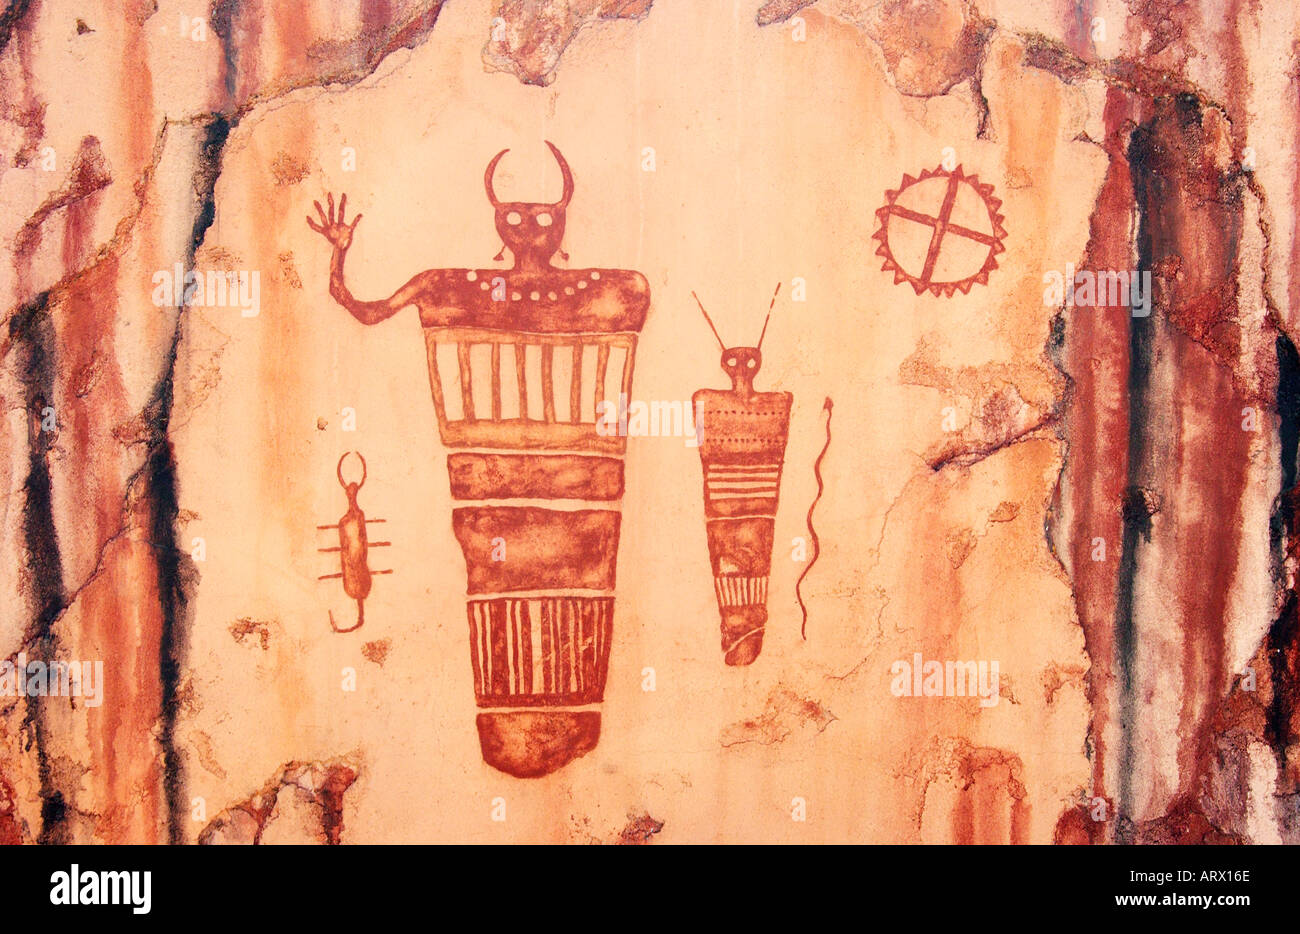 Anasazi indian petroglyphs in Moab Utah USA - Stock Image